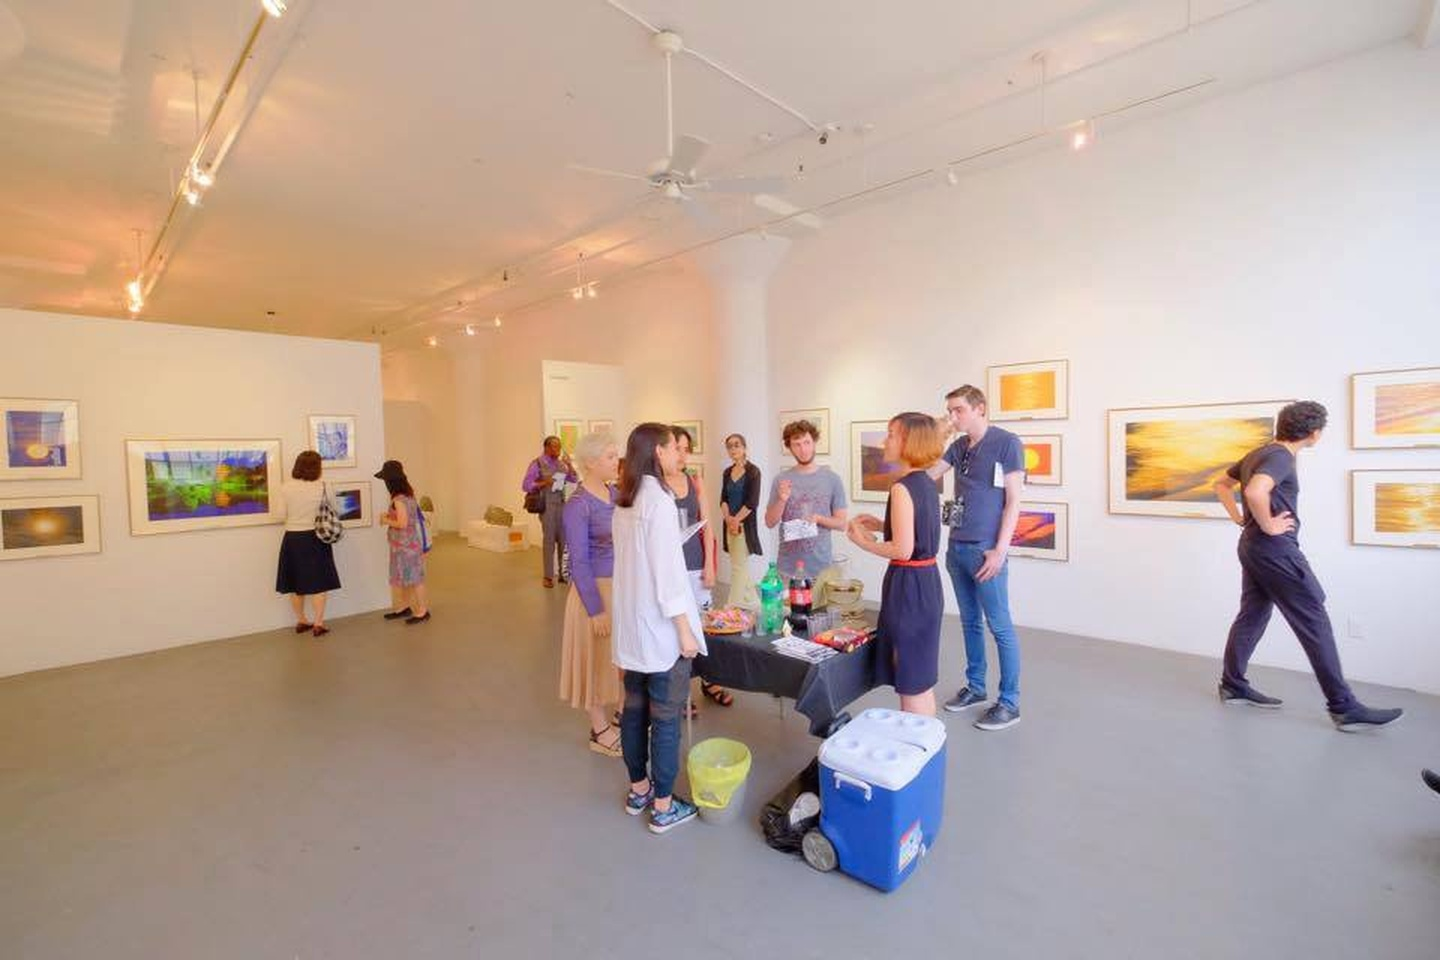 NYC corporate event venues Gallery Caelum Gallery image 4